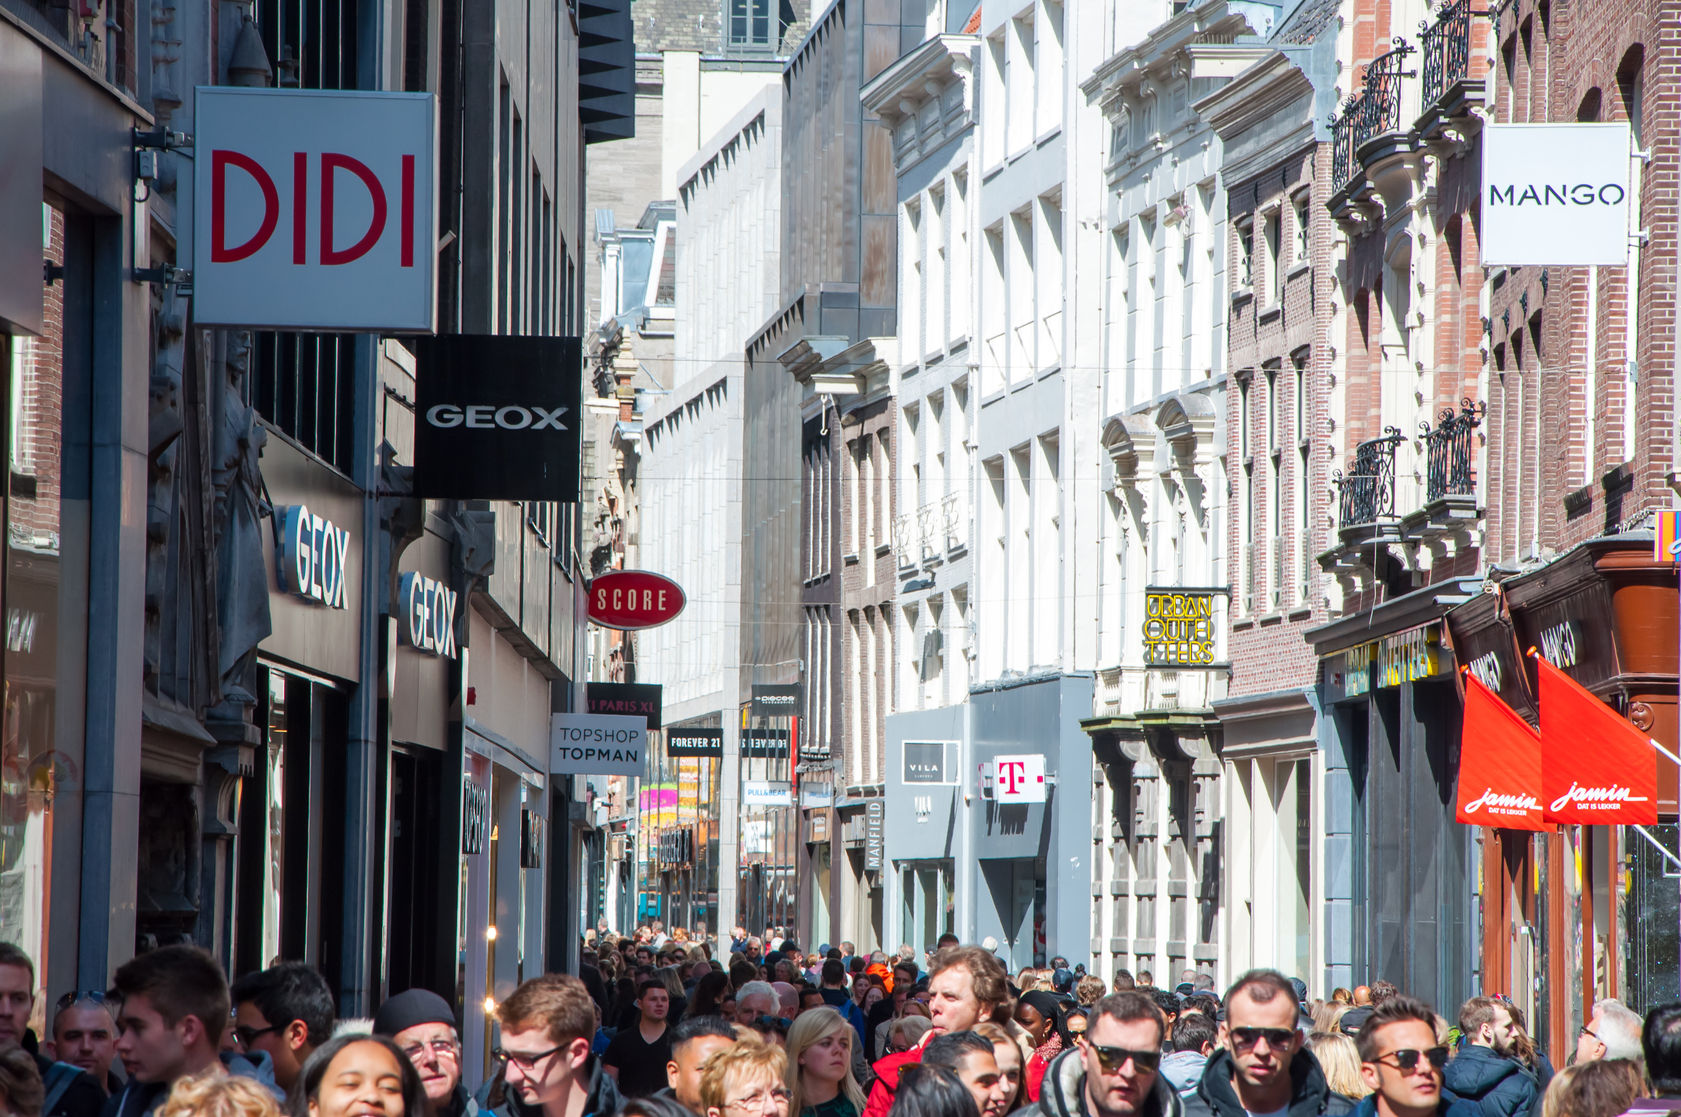 45638765 - amsterdam-april 30: shopping on kalverstraat street on april 30,2015, the netherlands. the kalverstraat is a busy shopping street of amsterdam, the capital of the netherlands.